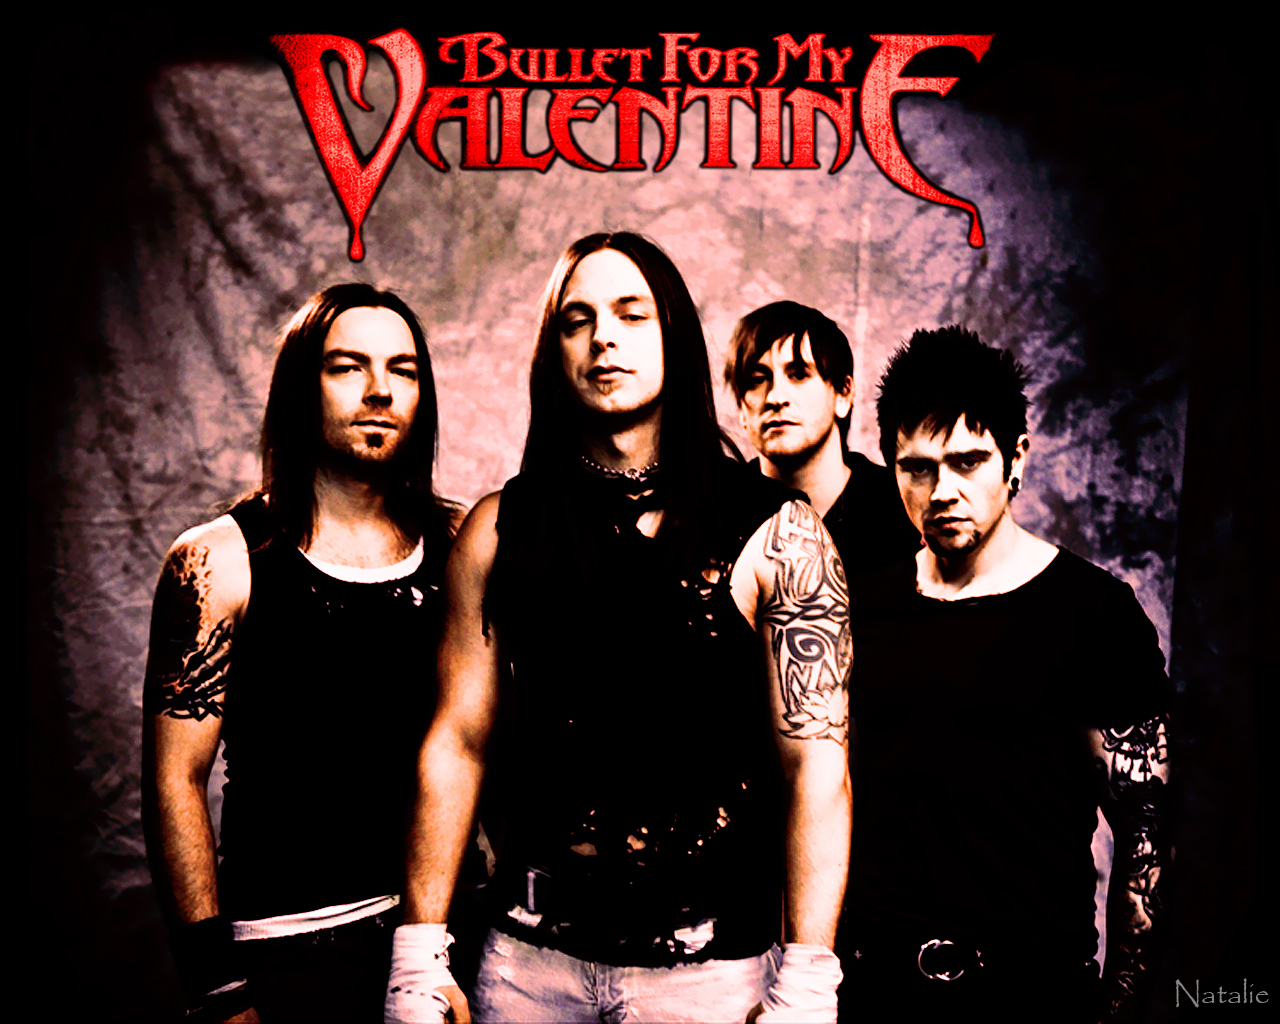 bullet for my valentine band history